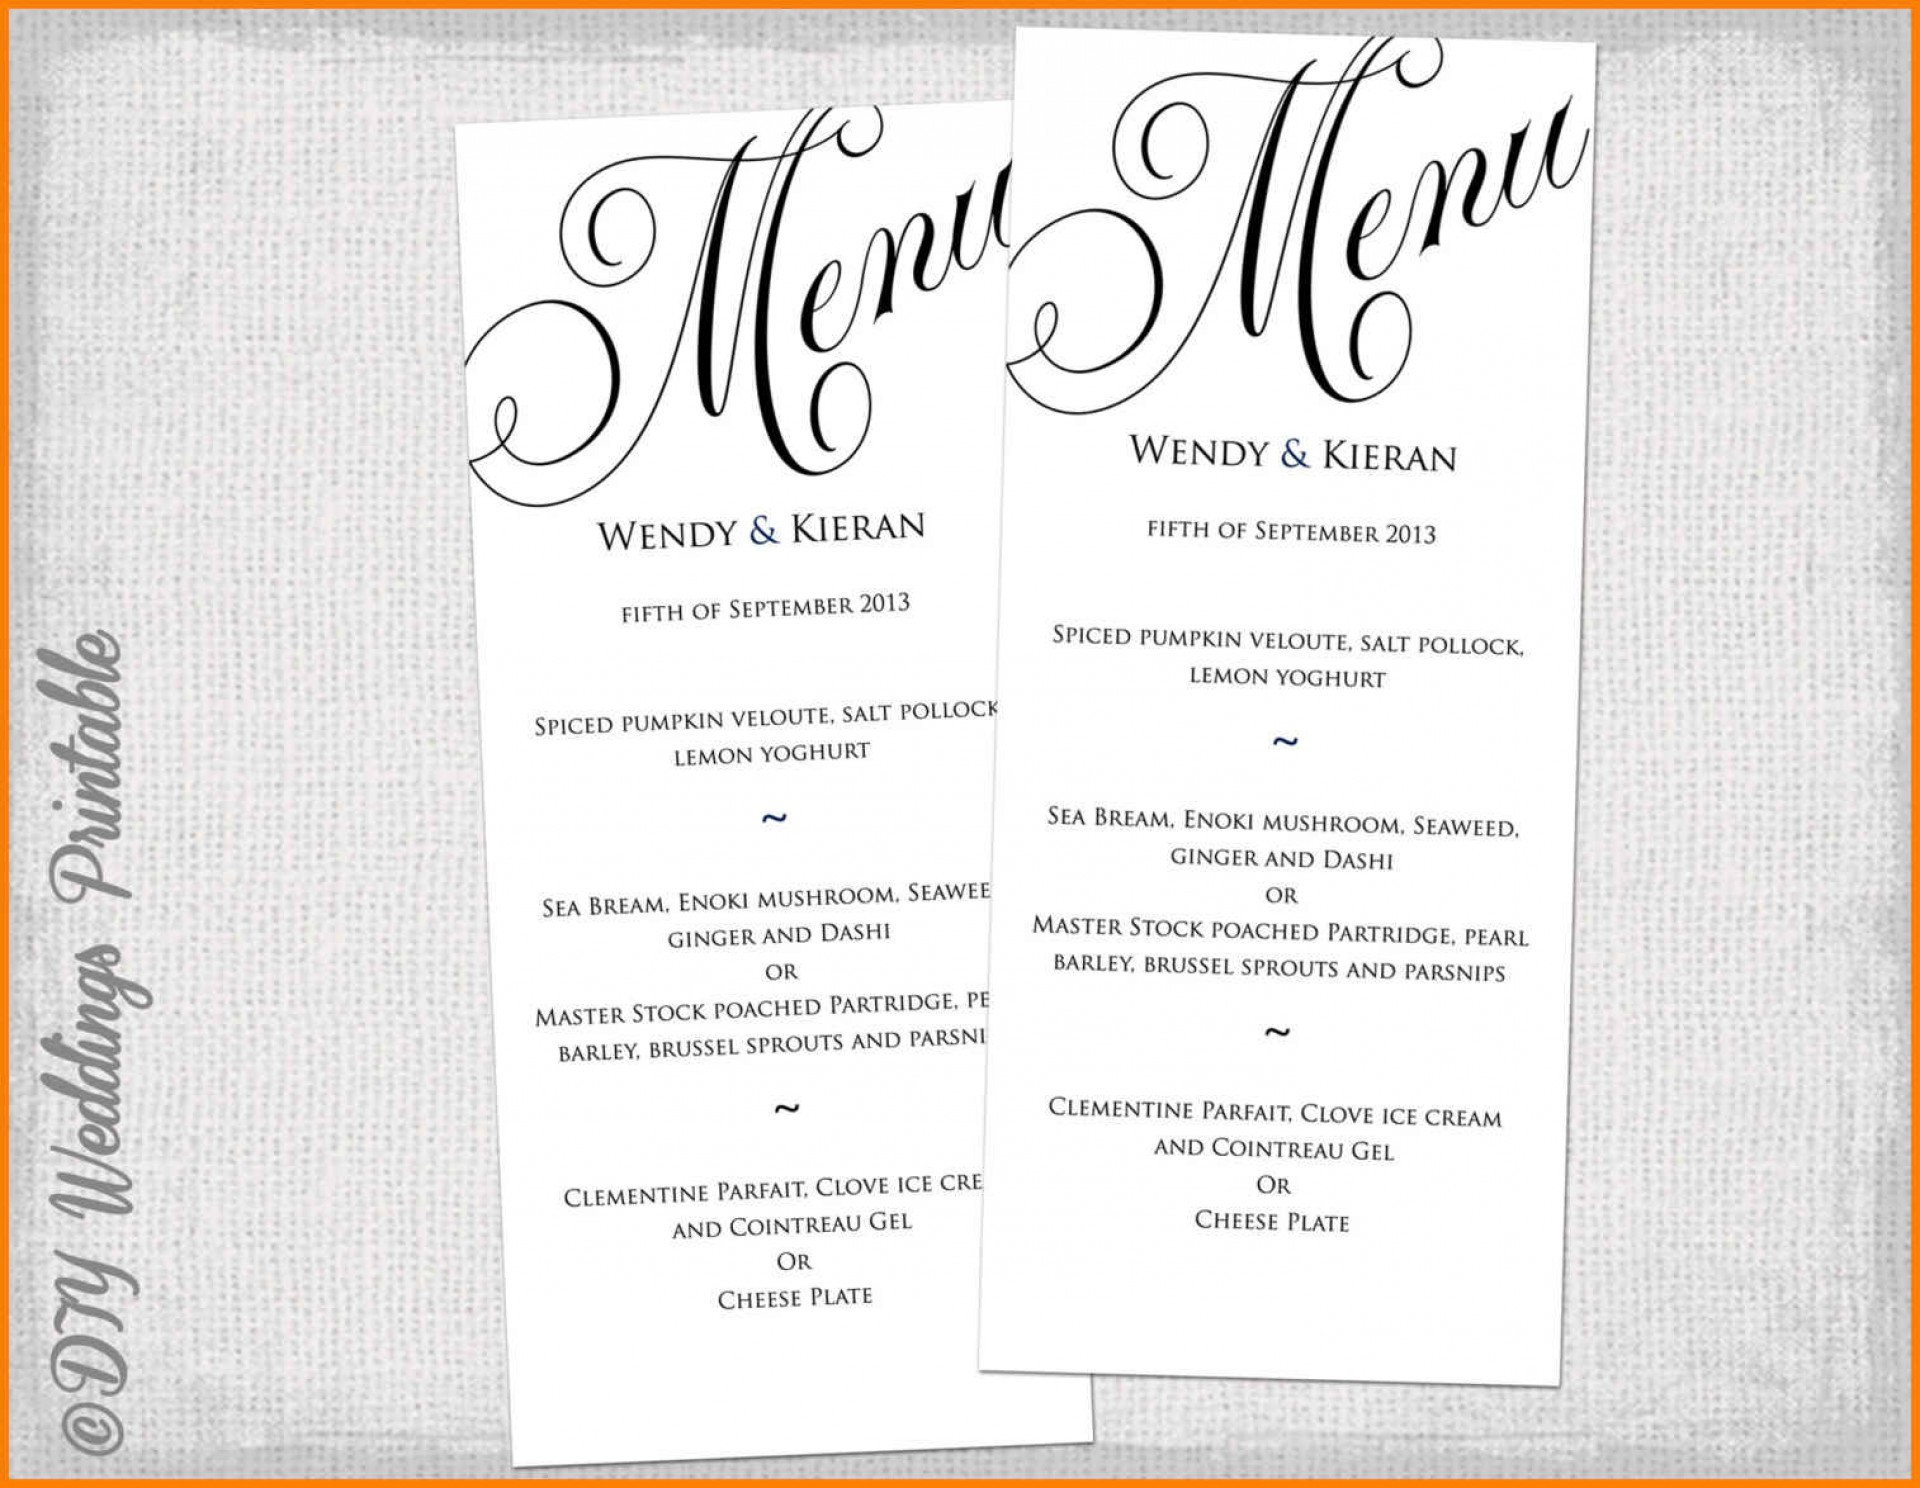 004 Dinner Party Menu Templates Template Ideas Elegant Leaflet - Free Printable Dinner Party Menu Template